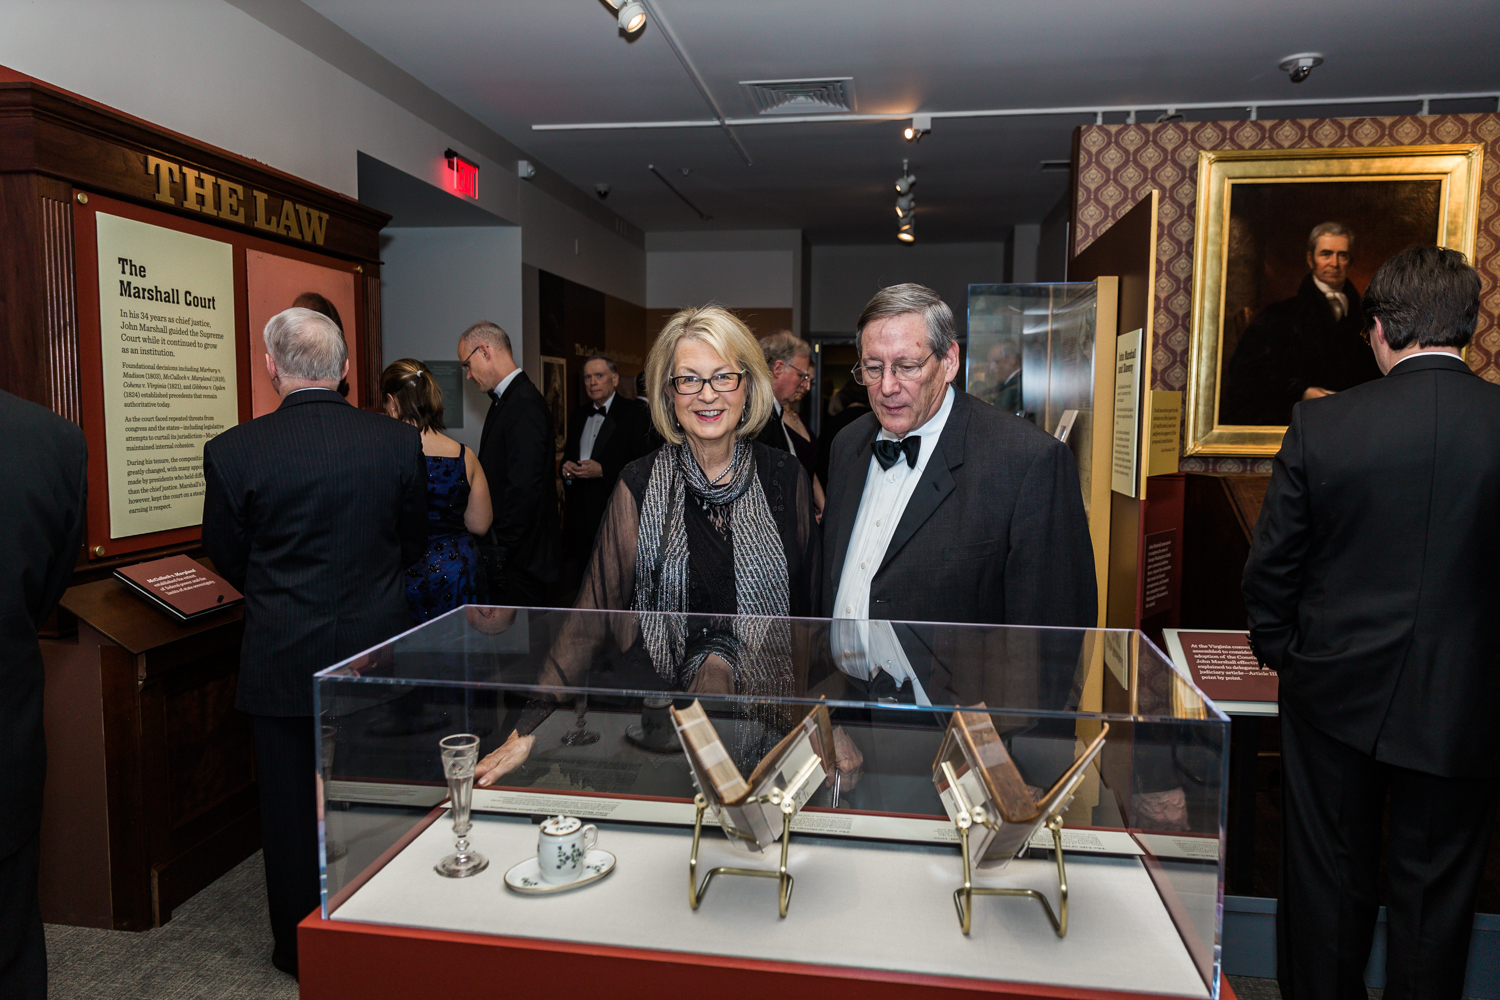 Guests enjoy a preview of the John Marshall Exhibition at the annual VMHC Gala.